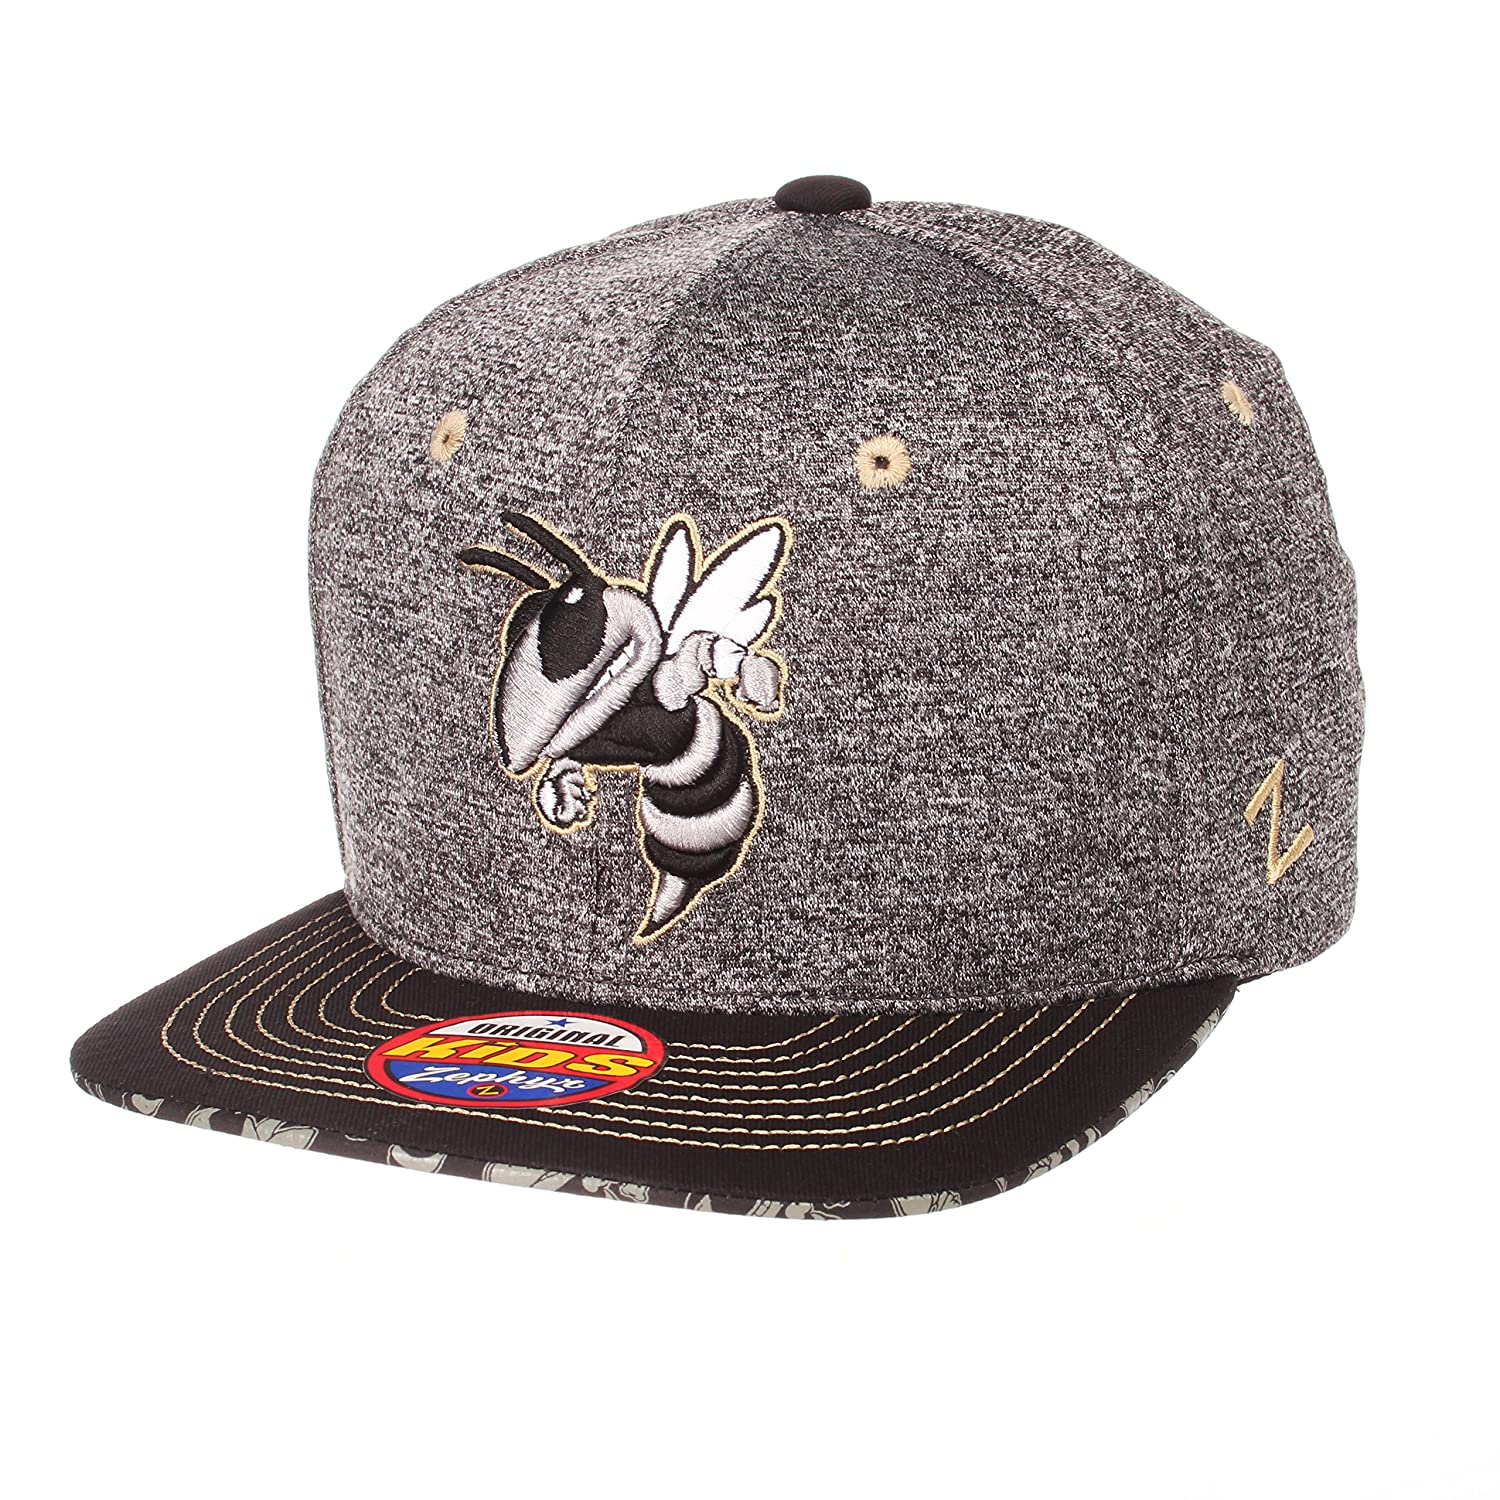 Adjustable Zephyr Children Boys Prodigy Youth NCAA Snapback Hat Gray//Team Color